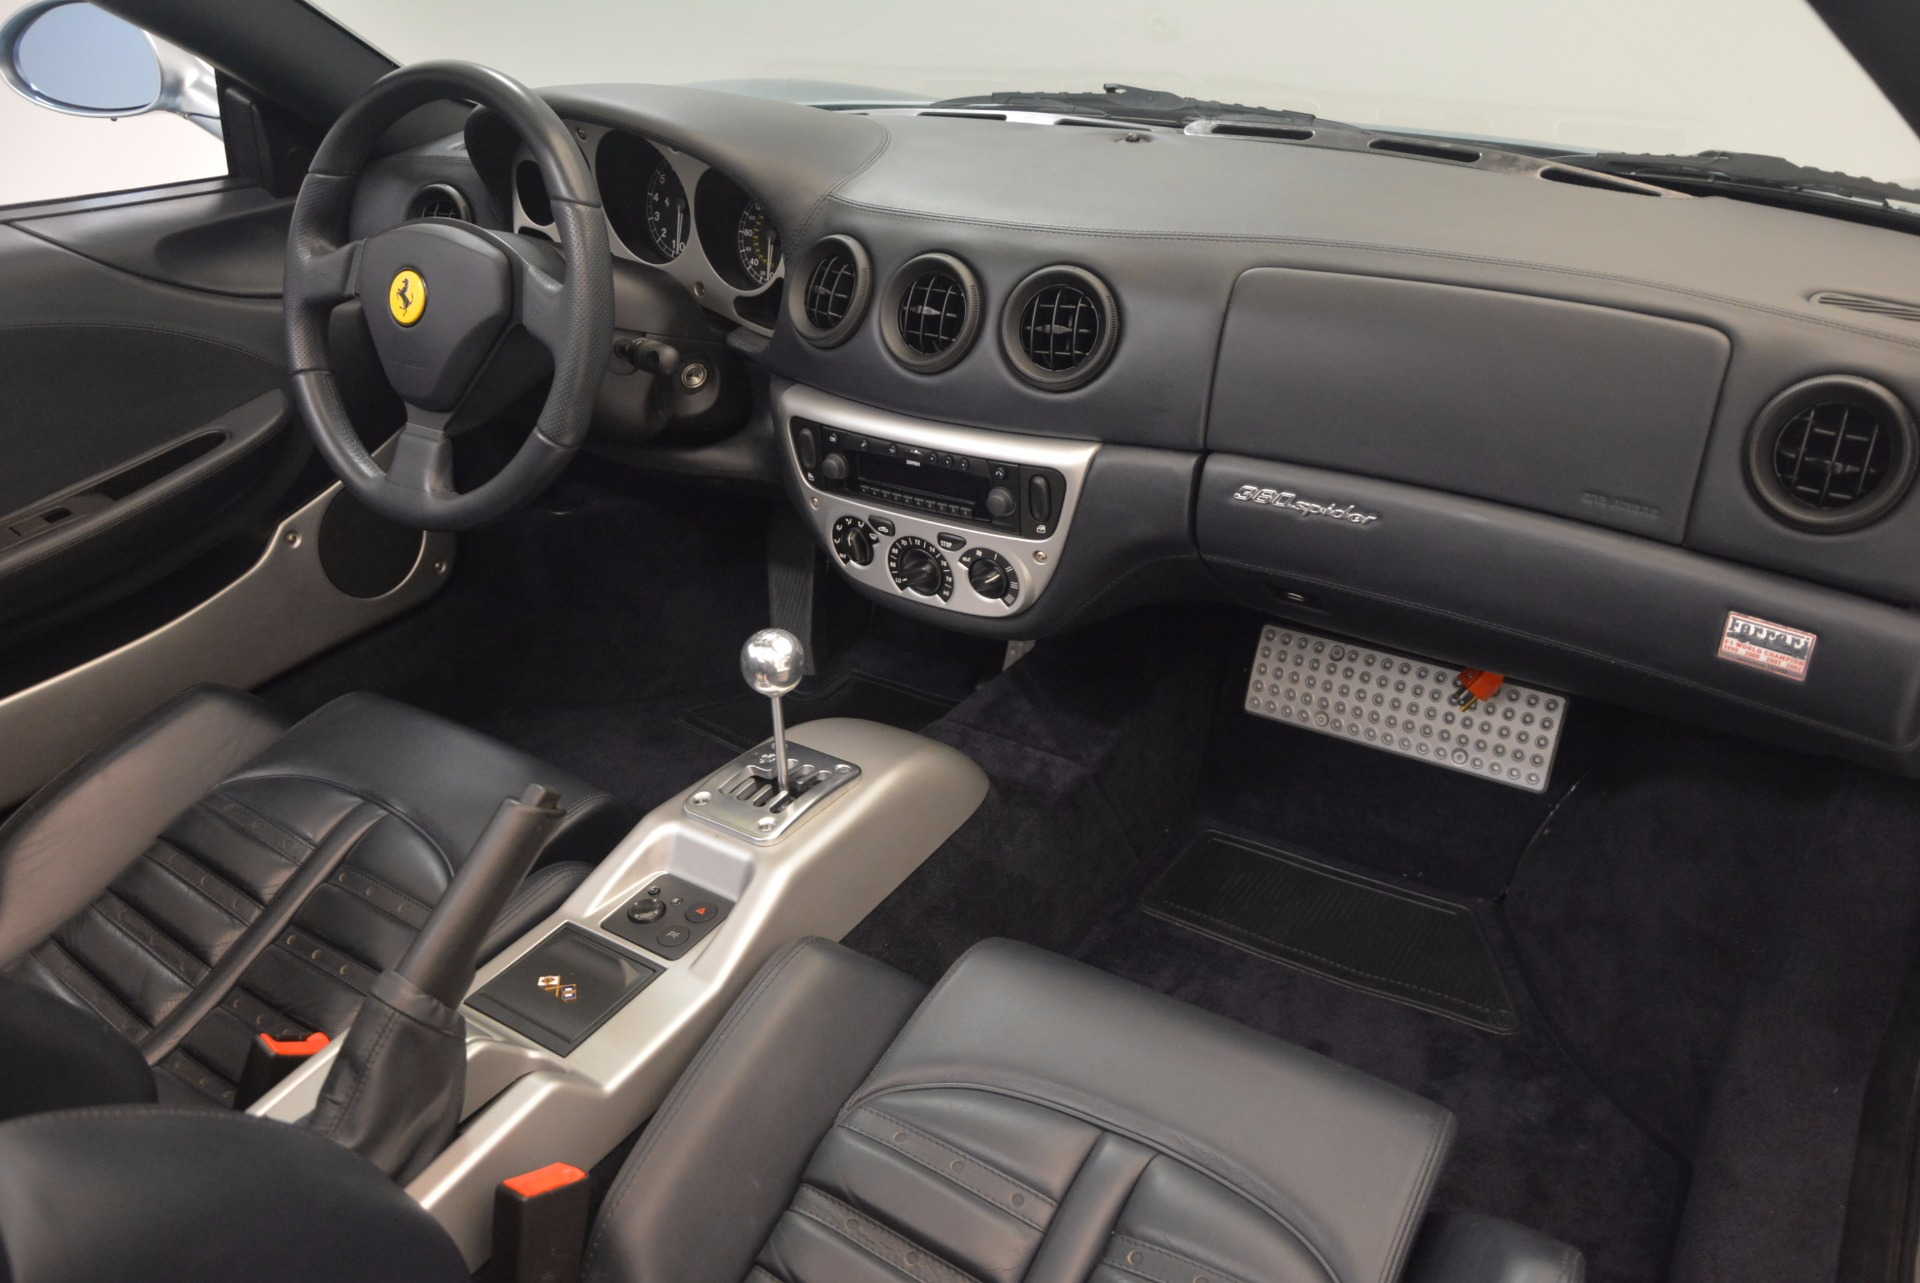 Used 2003 Ferrari 360 Spider 6-Speed Manual For Sale In Greenwich, CT 1445_p29